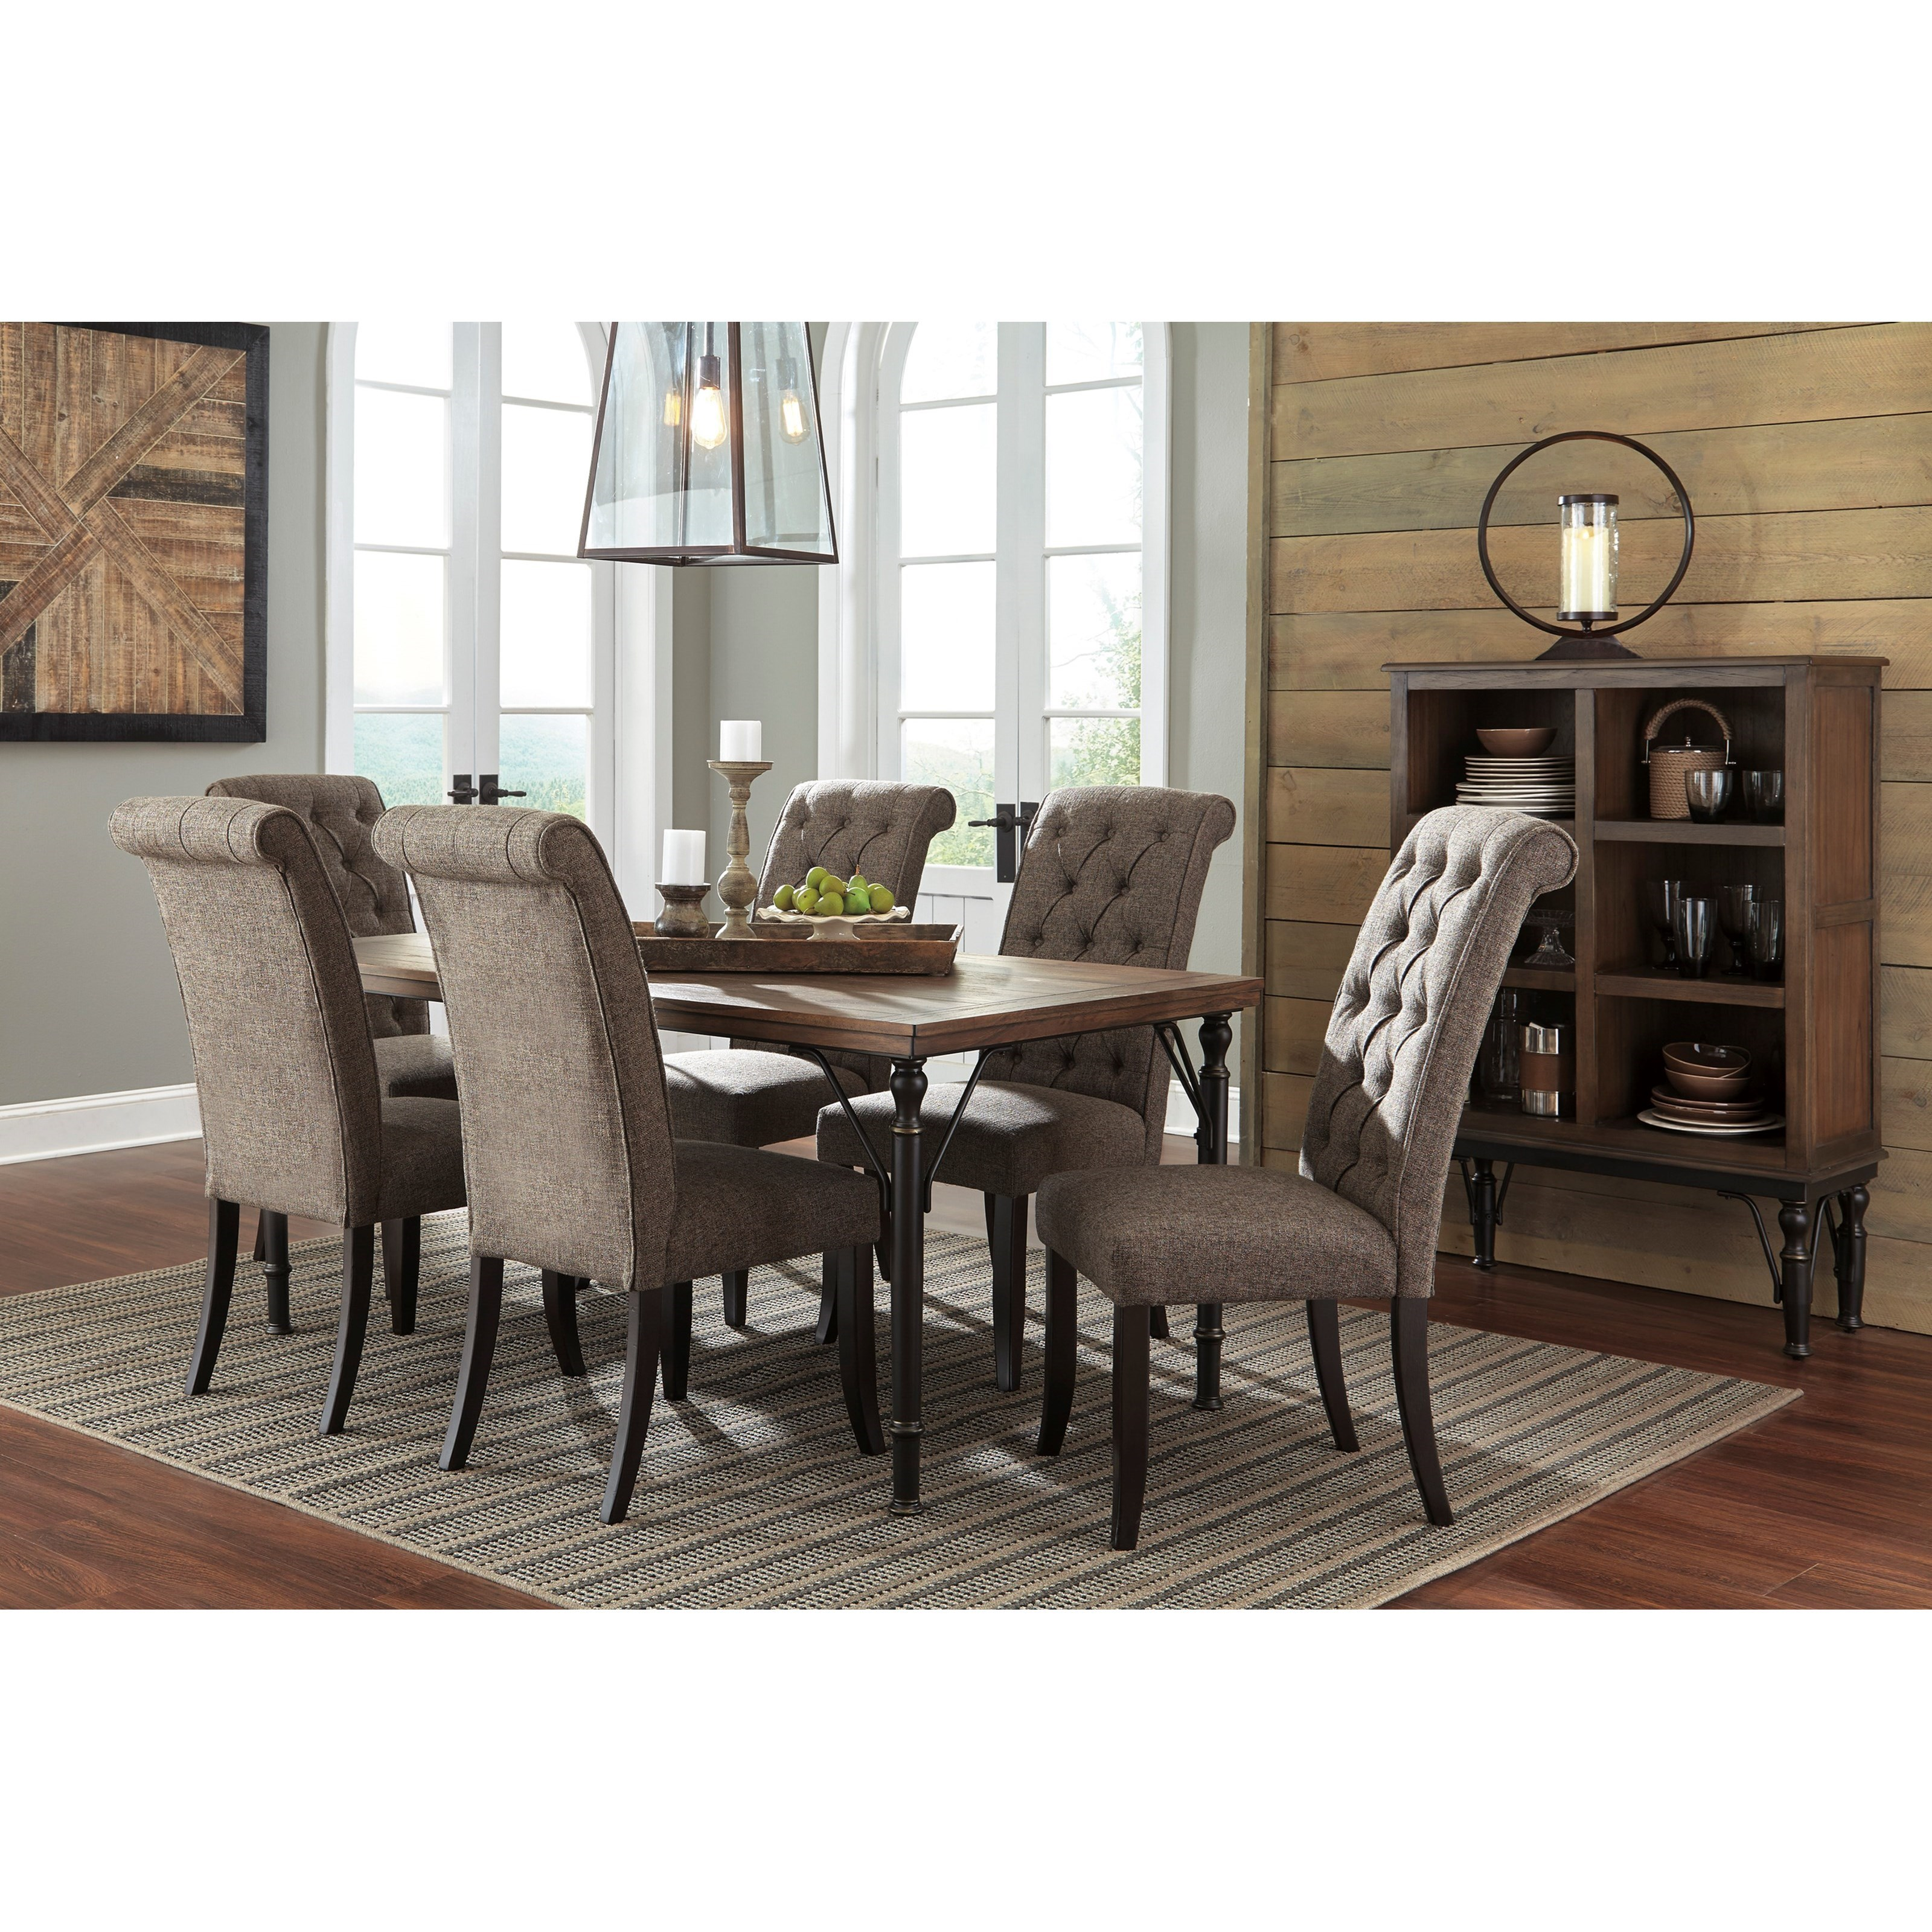 Signature design by ashley tripton casual dining room for Furniture group